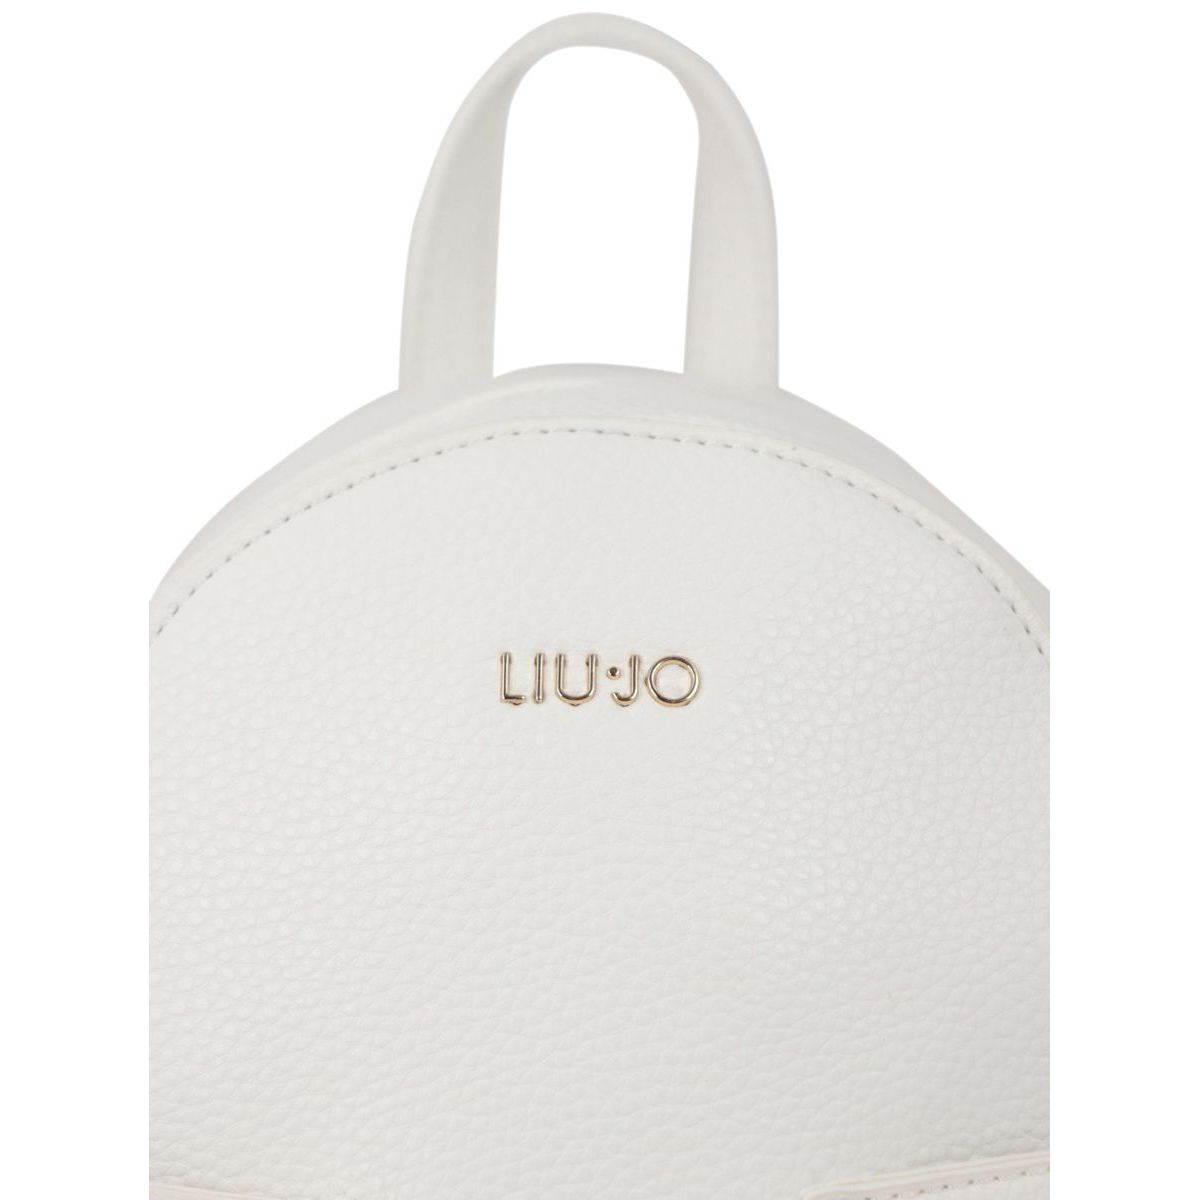 Faux leather backpack with perforated pockets and metal applications White Liu Jo